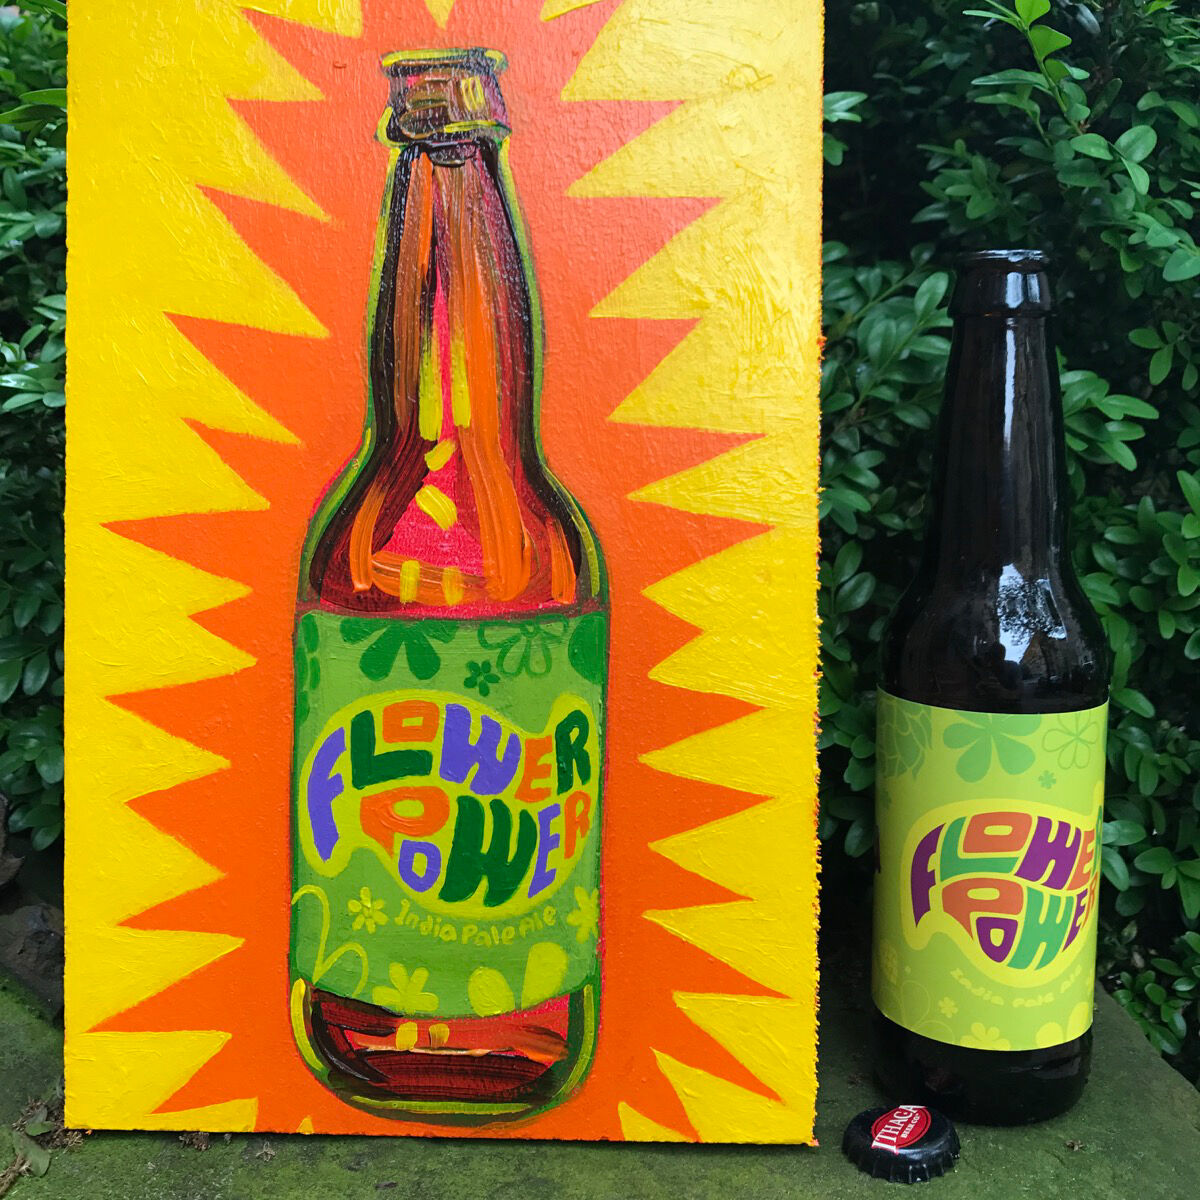 Tom Sanford, 77 - Flower Power India Pale Ale (USA), 2017. Courtesy of the artist.